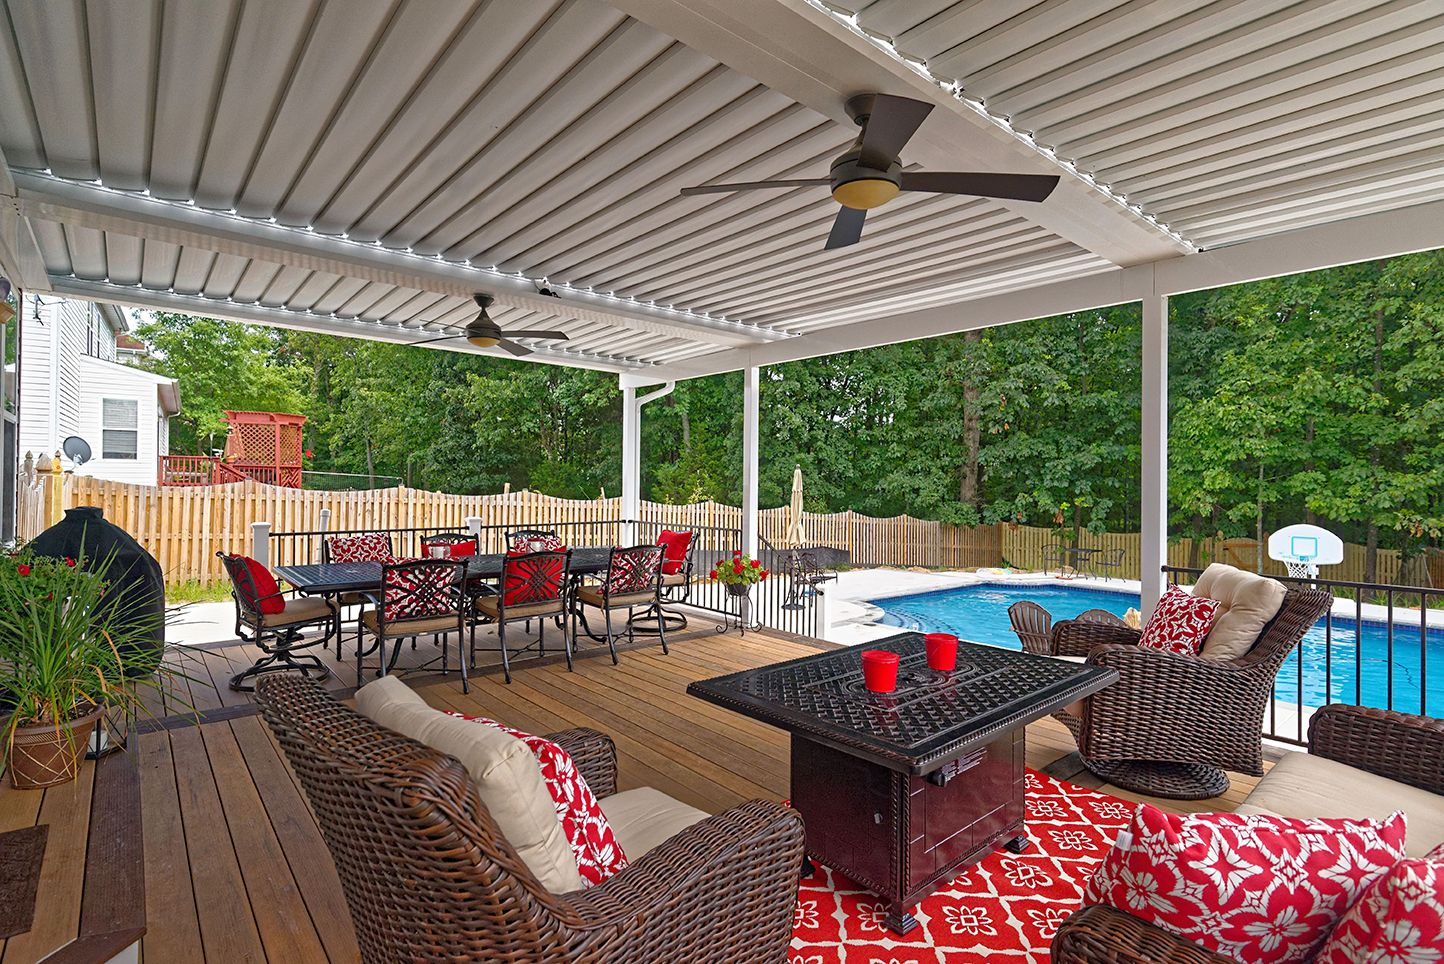 Relax By The Pool Under An Equinox Adjustable Louvered Roof Close The Louvers For Shade Or Rain Prote Rustic Pergola Pergola Ideas For Patio Metal Pergola Diy